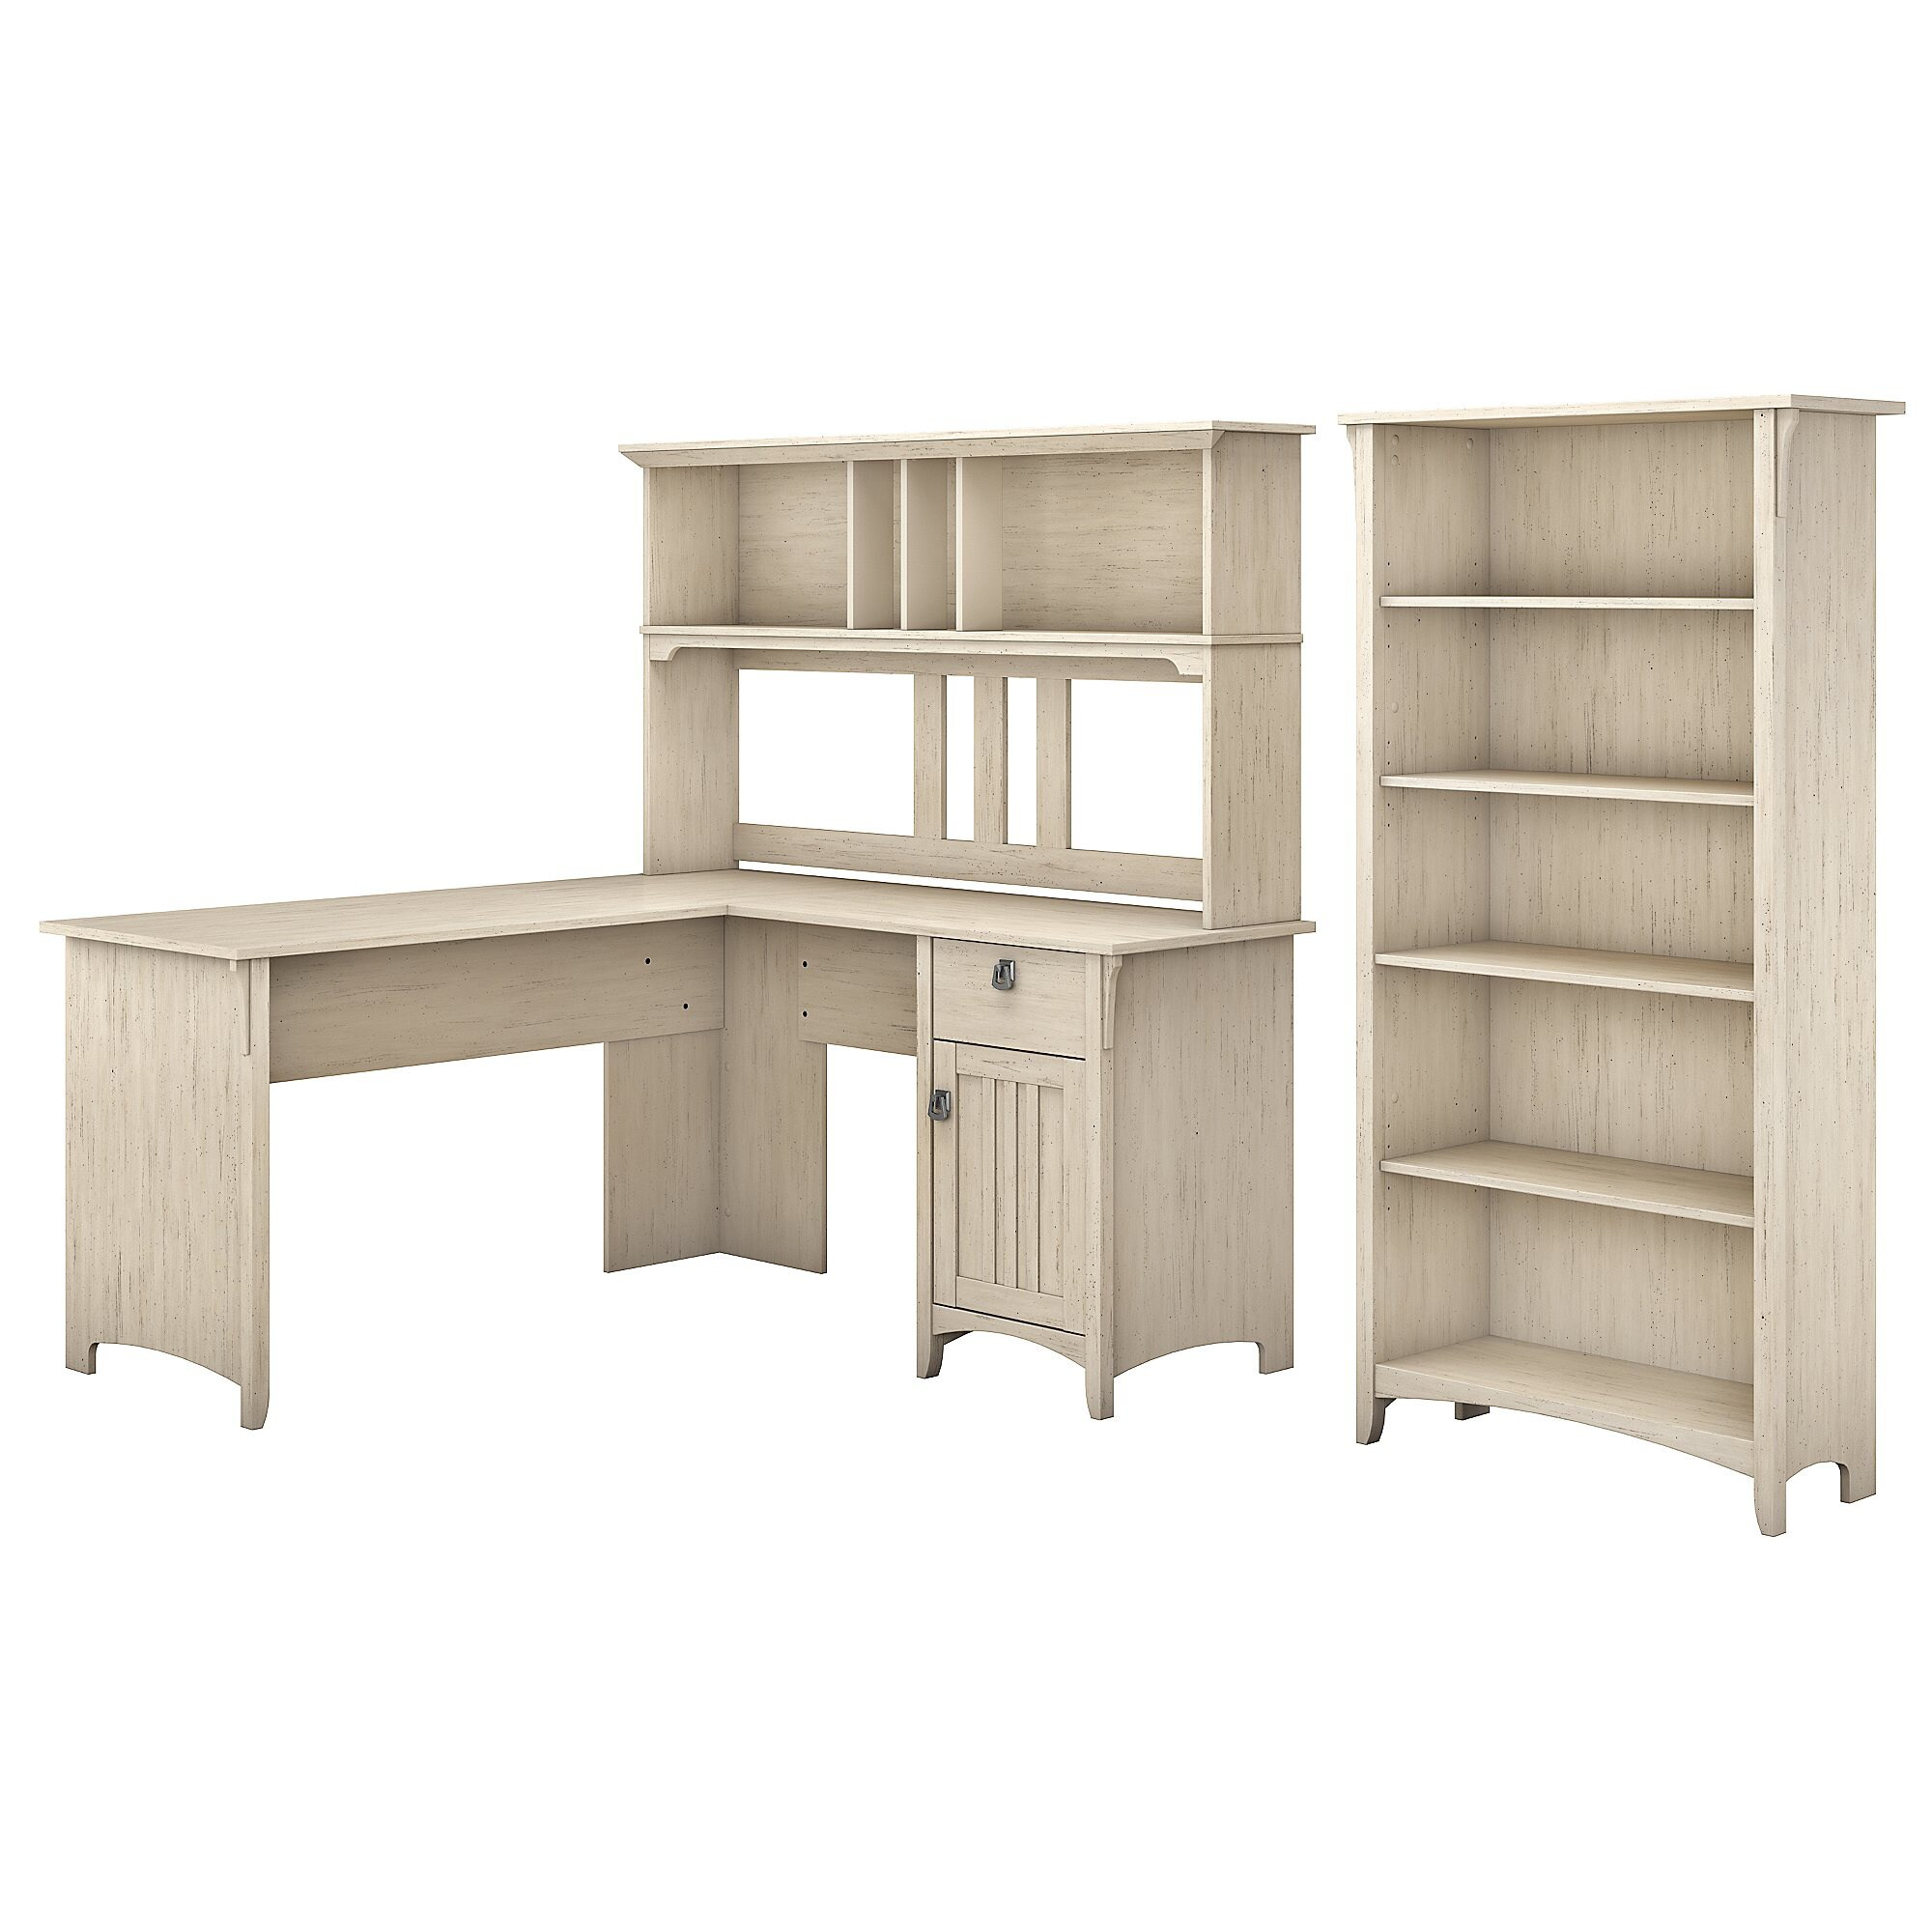 The Gray Barn Ermine 60 Inch L Shaped Desk With Hutch And 5 Shelf Bookcase In White